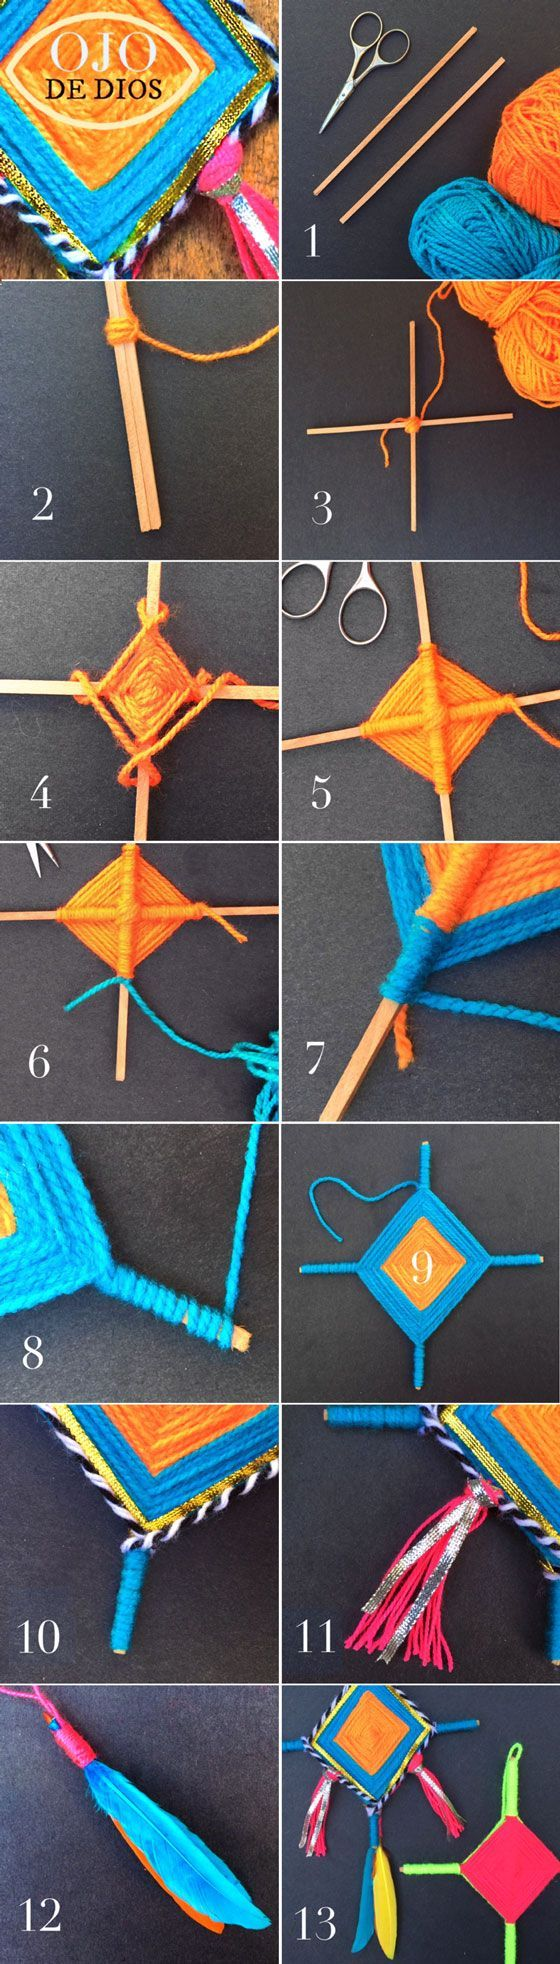 Instructions on how to make Ojo de Dios!: